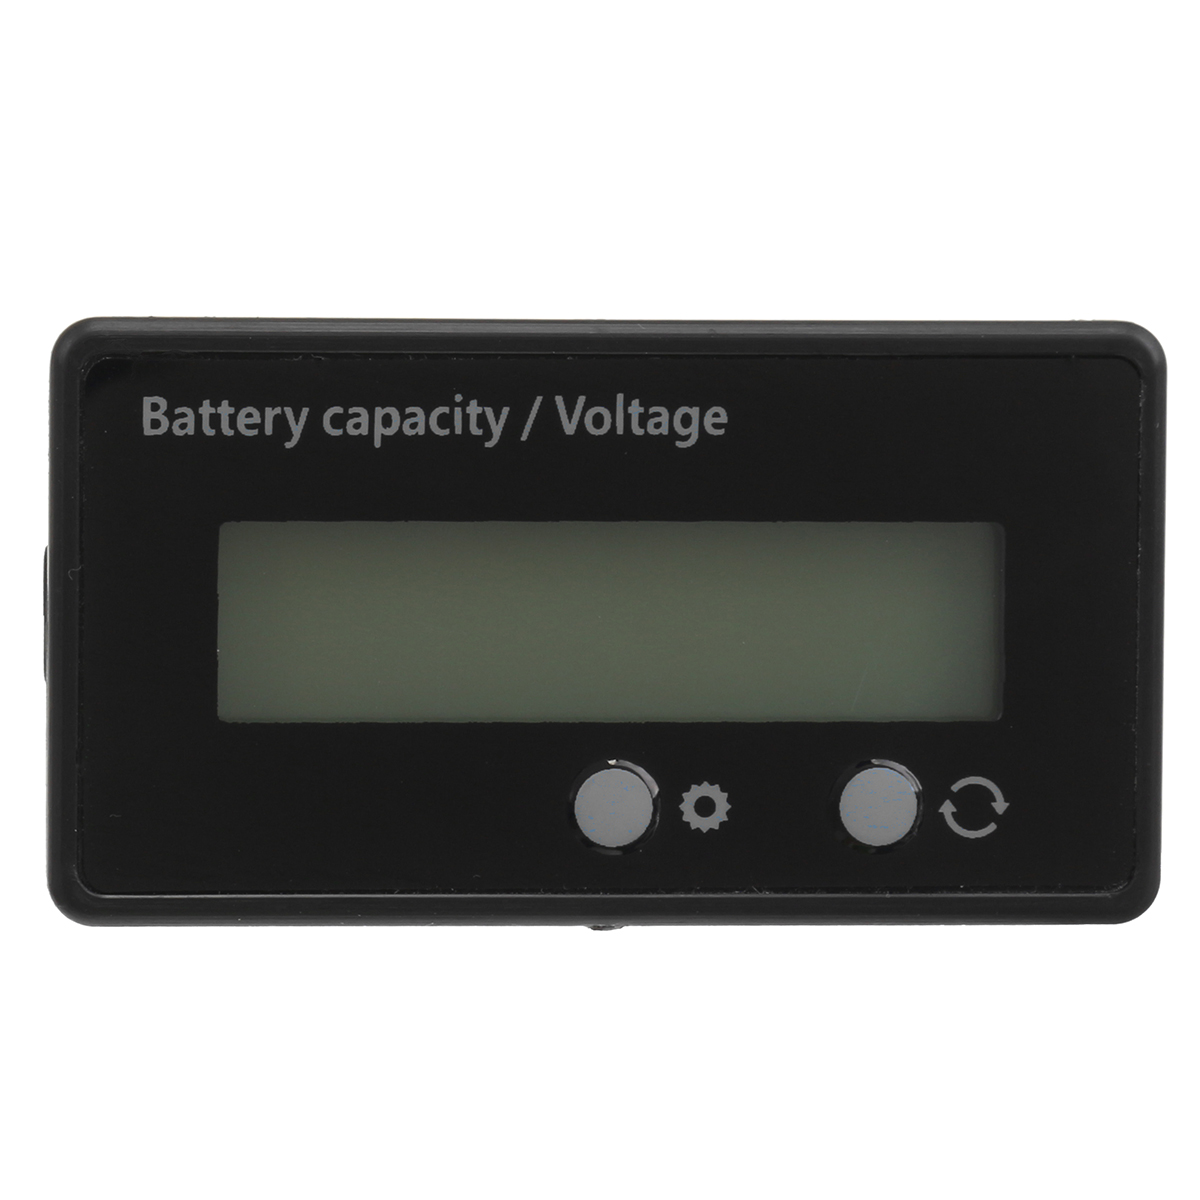 12V 6-63V LCD Acid Lead Lithium Battery Capacity Indicator Voltage Digital Voltmeter